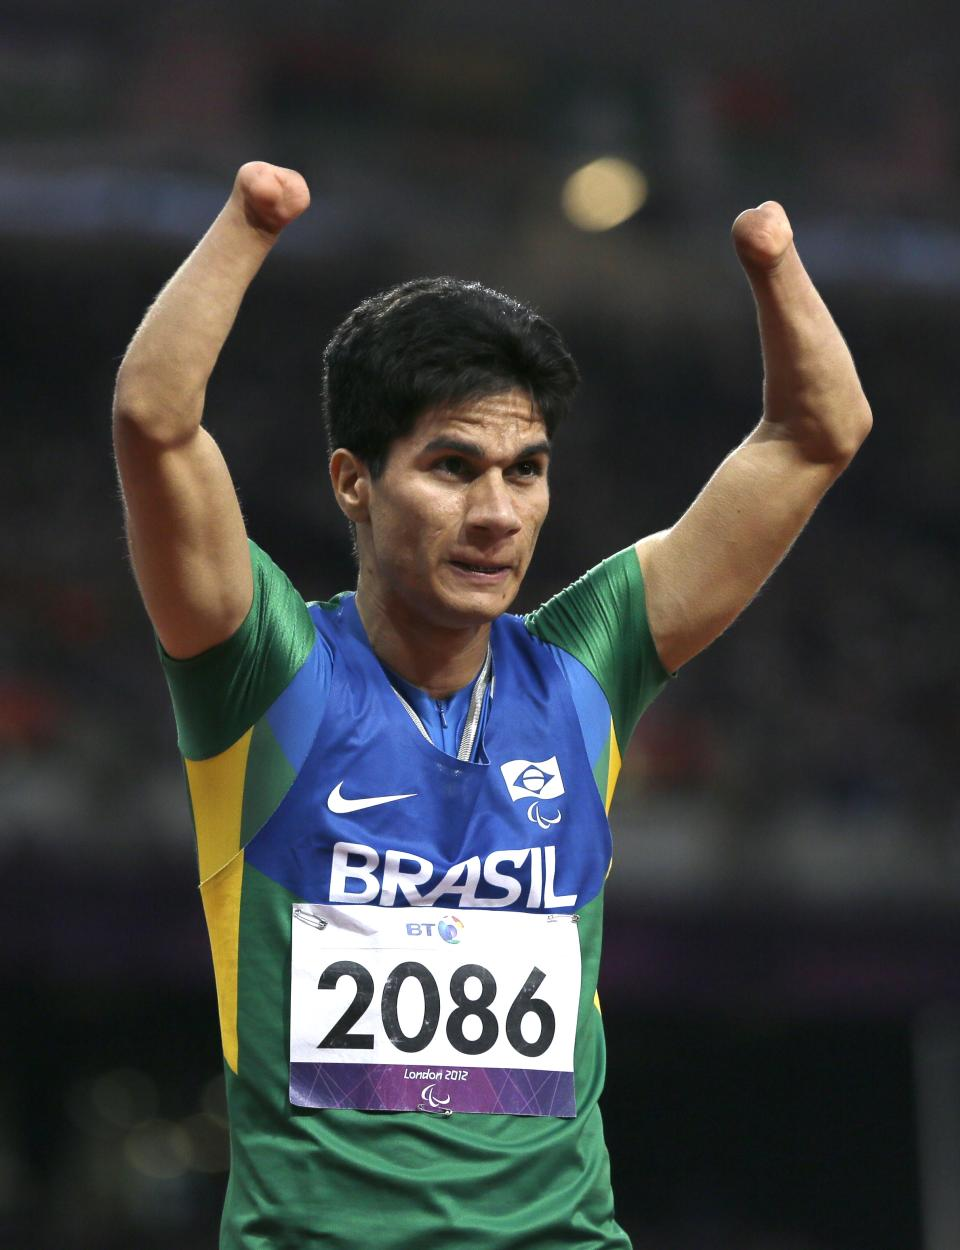 Brazil's Yohansson Nasciemento celebrates winning gold in the men's 200m T46 final at the 2012 Paralympics, Sunday, Sept. 2, 2012, in London. (AP Photo/Kirsty Wigglesworth)